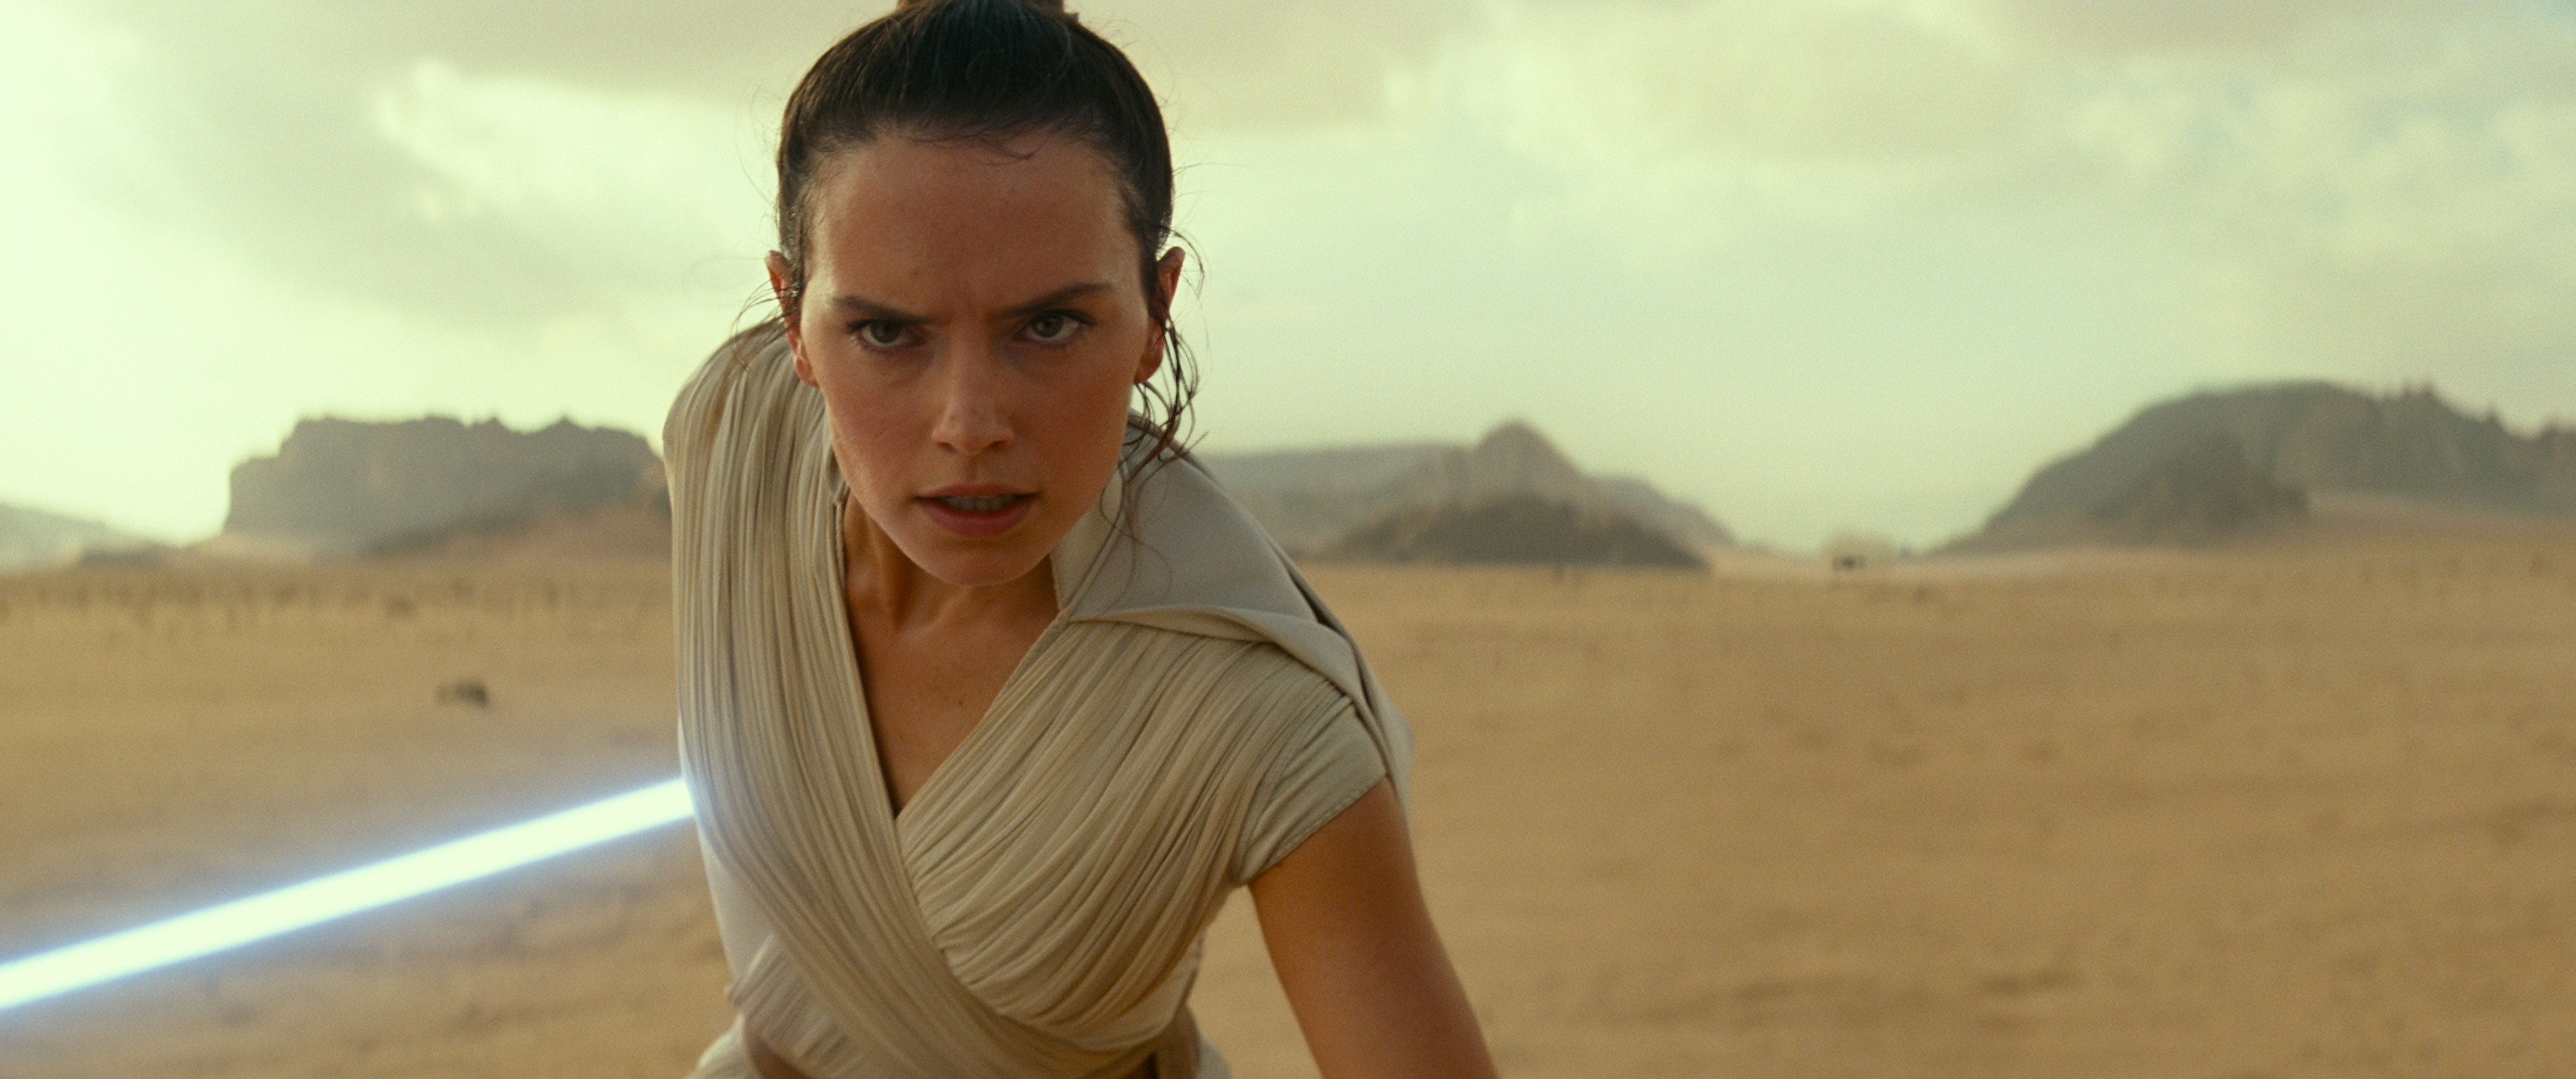 2560x1024 Star Wars Episode Ix Daisy Ridley 2560x1024 Resolution Wallpaper Hd Movies 4k Wallpapers Images Photos And Background